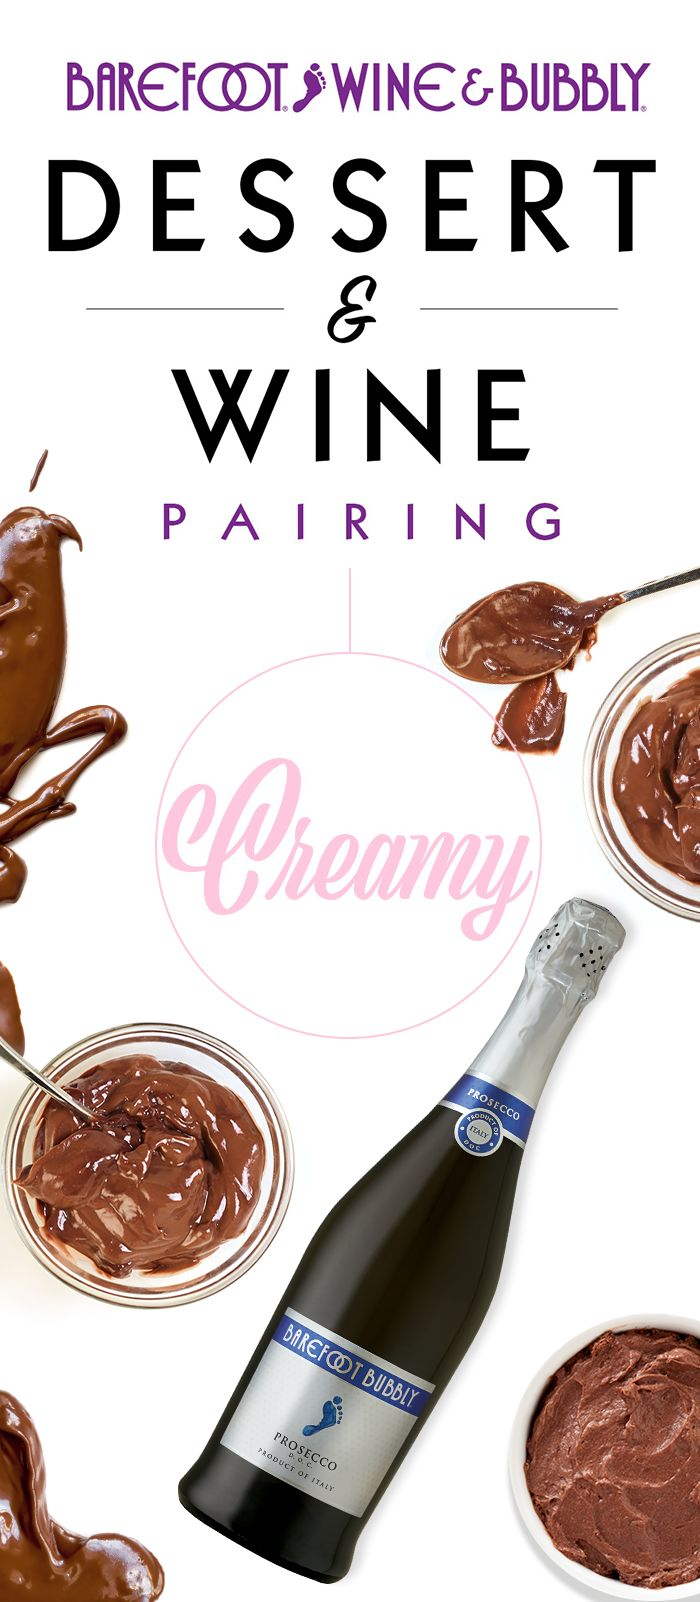 Pudding and Prosecco are a match made in dessert heaven. Next time you serve chocolate pudding, pair it with Barefoot Bubbly Prosecco.